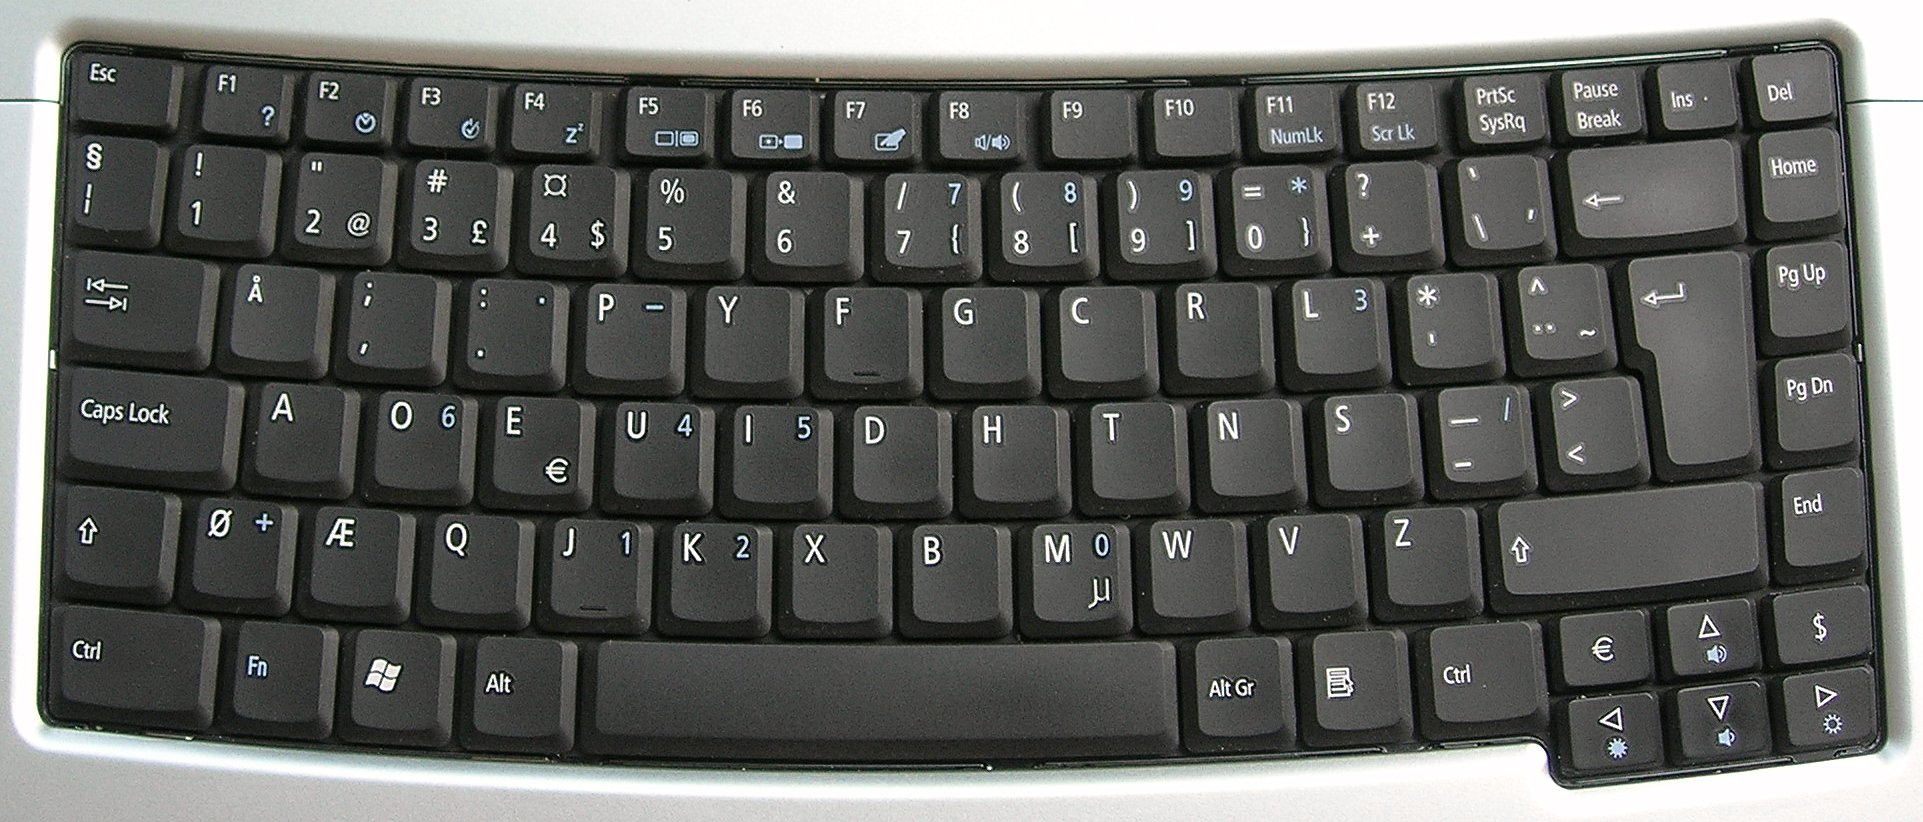 Description Keyboard-Dvorak-norwegian.JPG